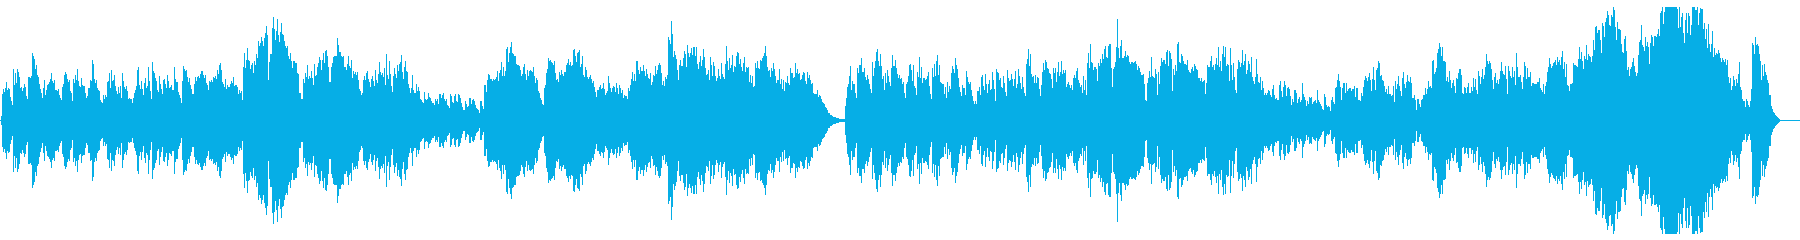 Orchestral classic pops's reproduced waveform